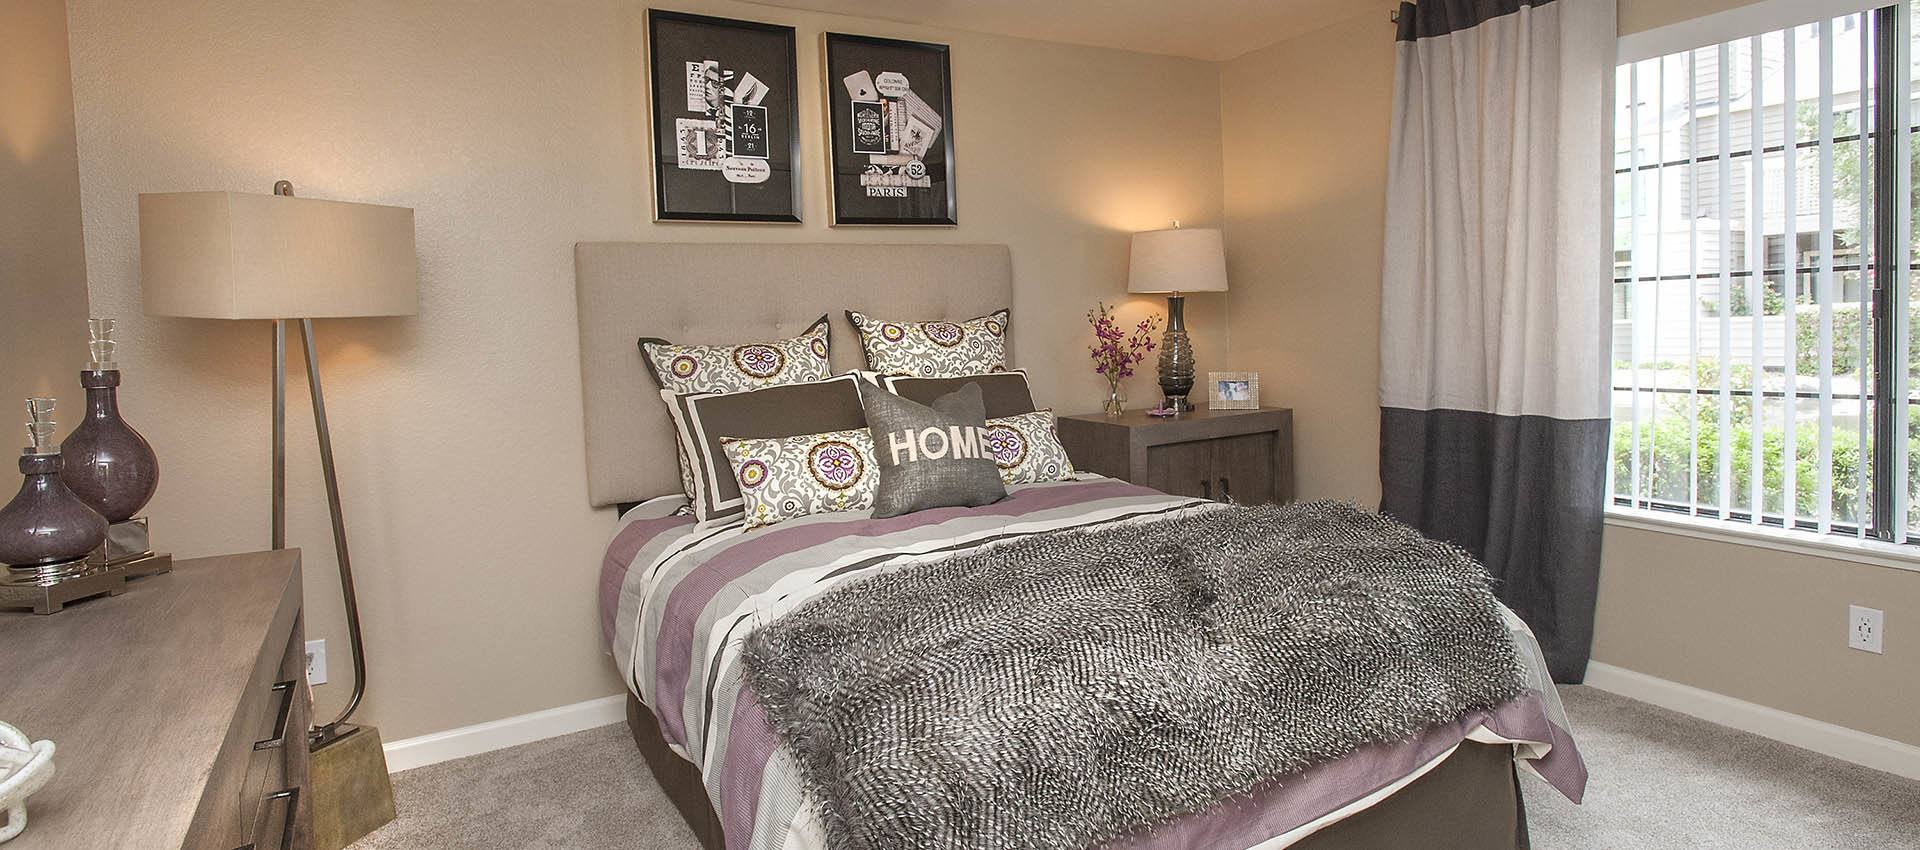 Large Bedroom With Modern Decor at Hidden Lake Condominium Rentals in Sacramento, California